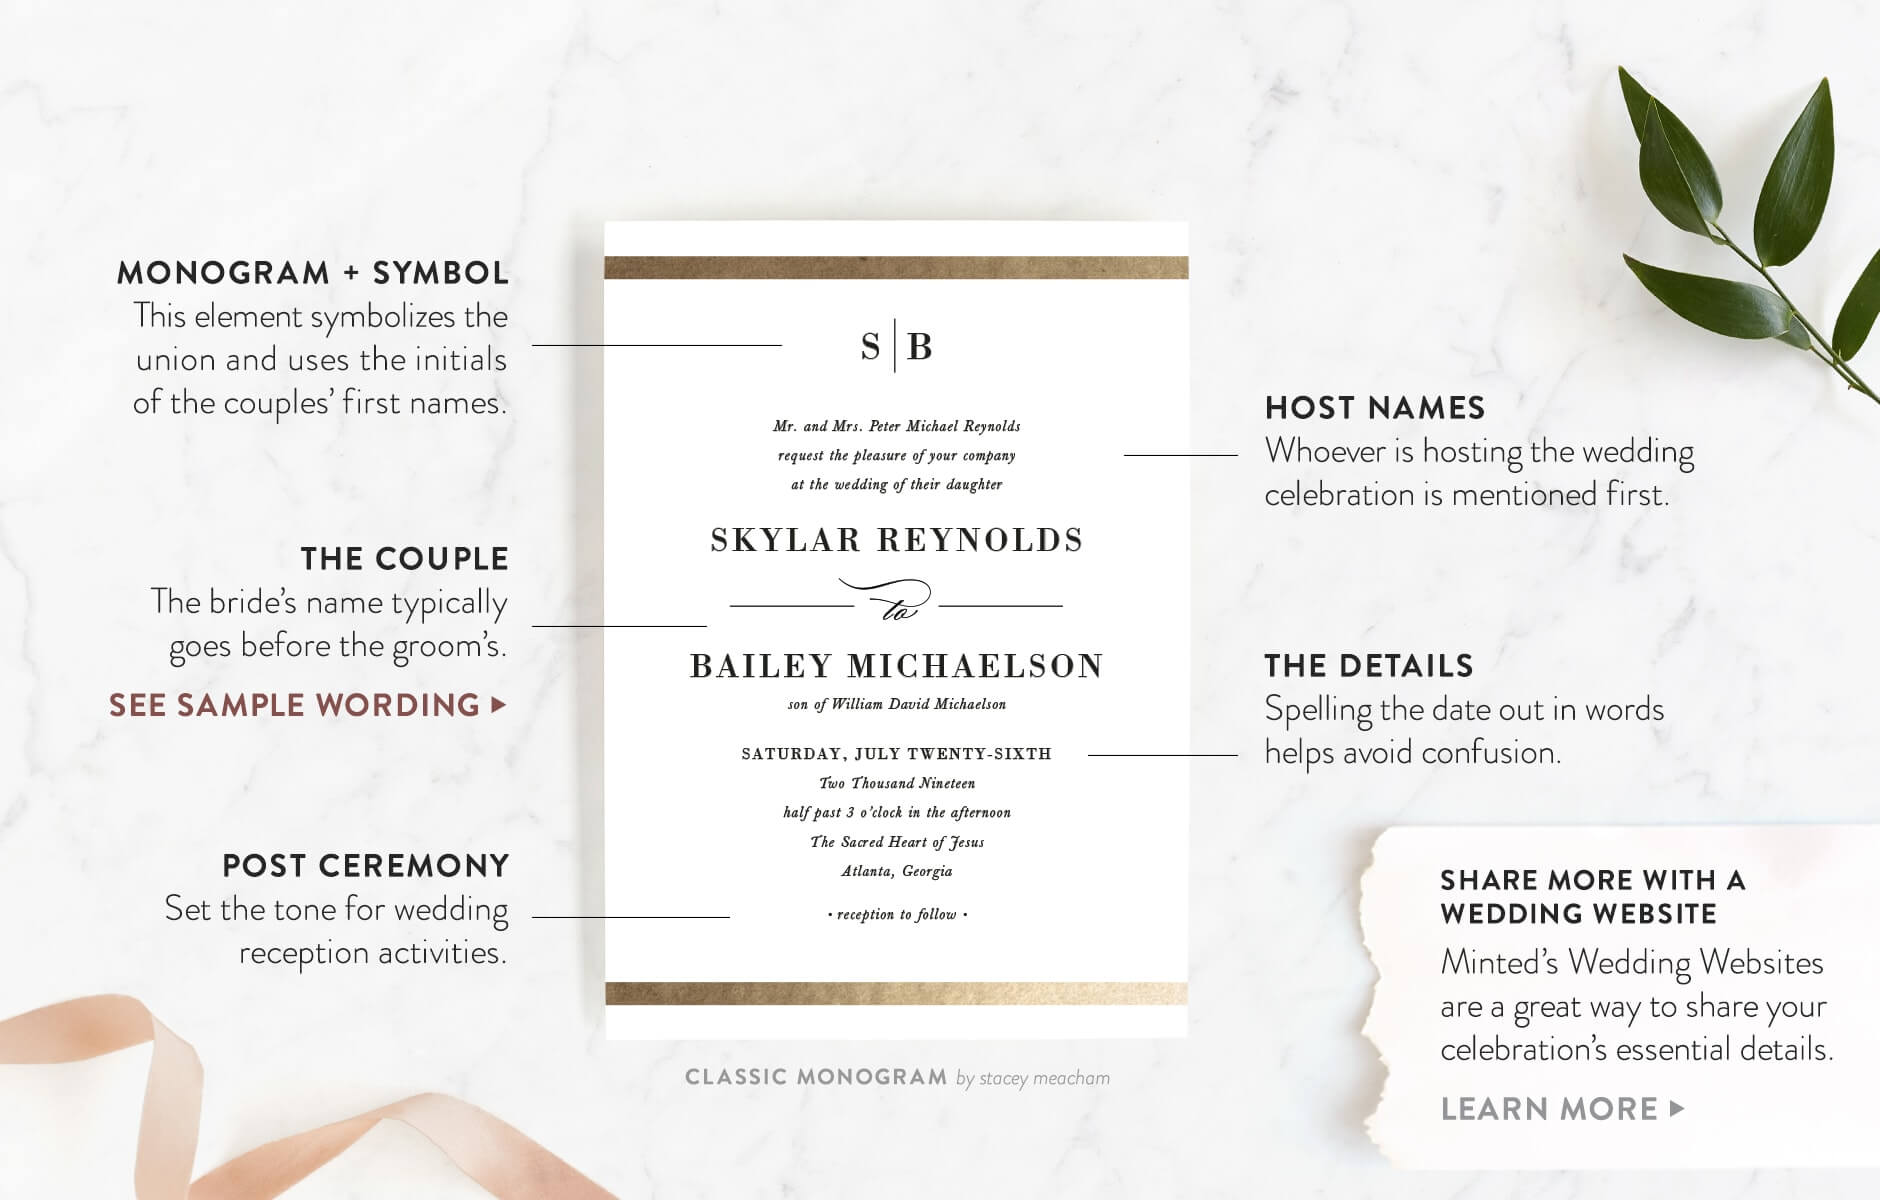 Wedding Invitation Wording Etiquette.Wedding Invitation Wording Etiquette Minted